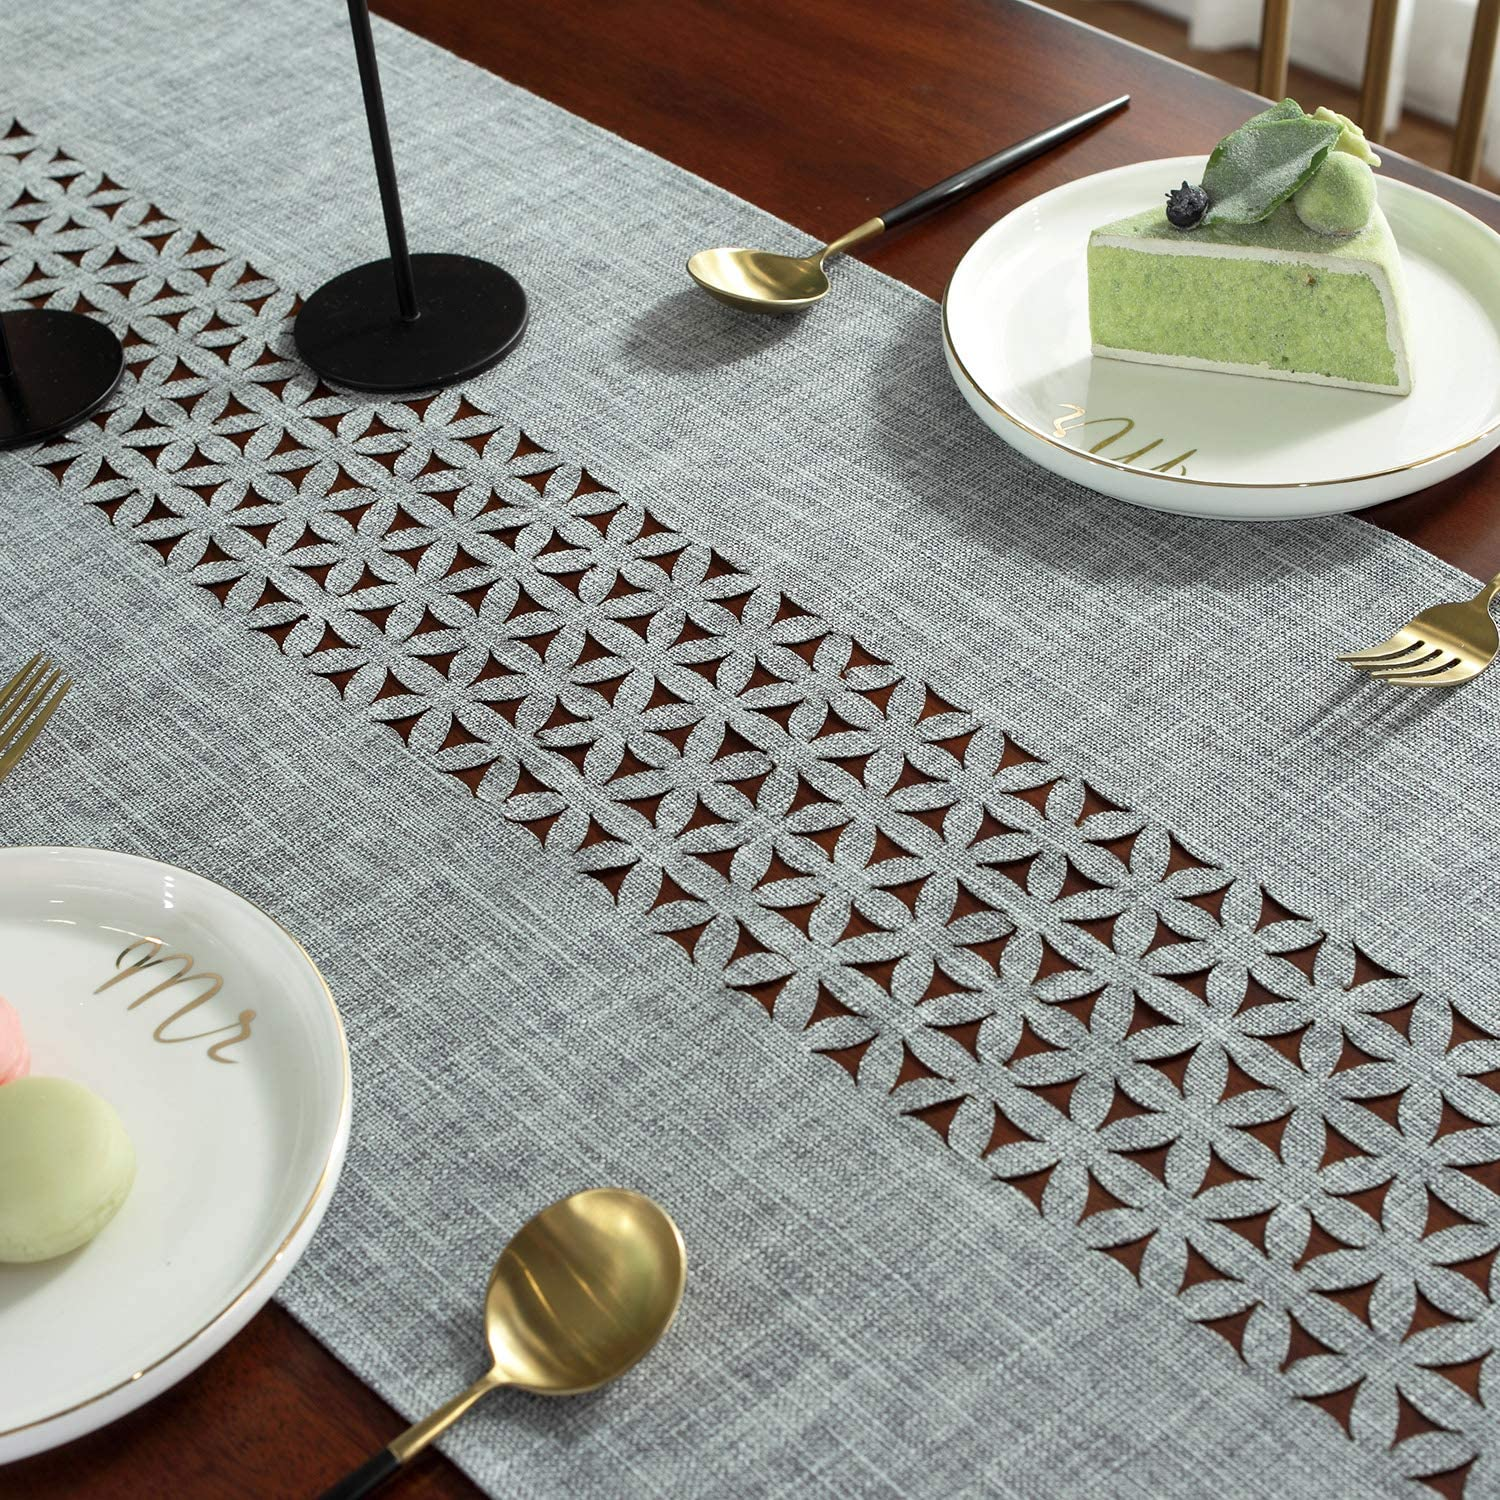 """SUTAVIA Classic Rectangular Table Runner, Non - Slip HeatOne Easy to Clean Modern Farmhouse Kitchen Table Runners,Dining Table or dresser protocol (Grey, 16""""×84""""): Home & Kitchen"""